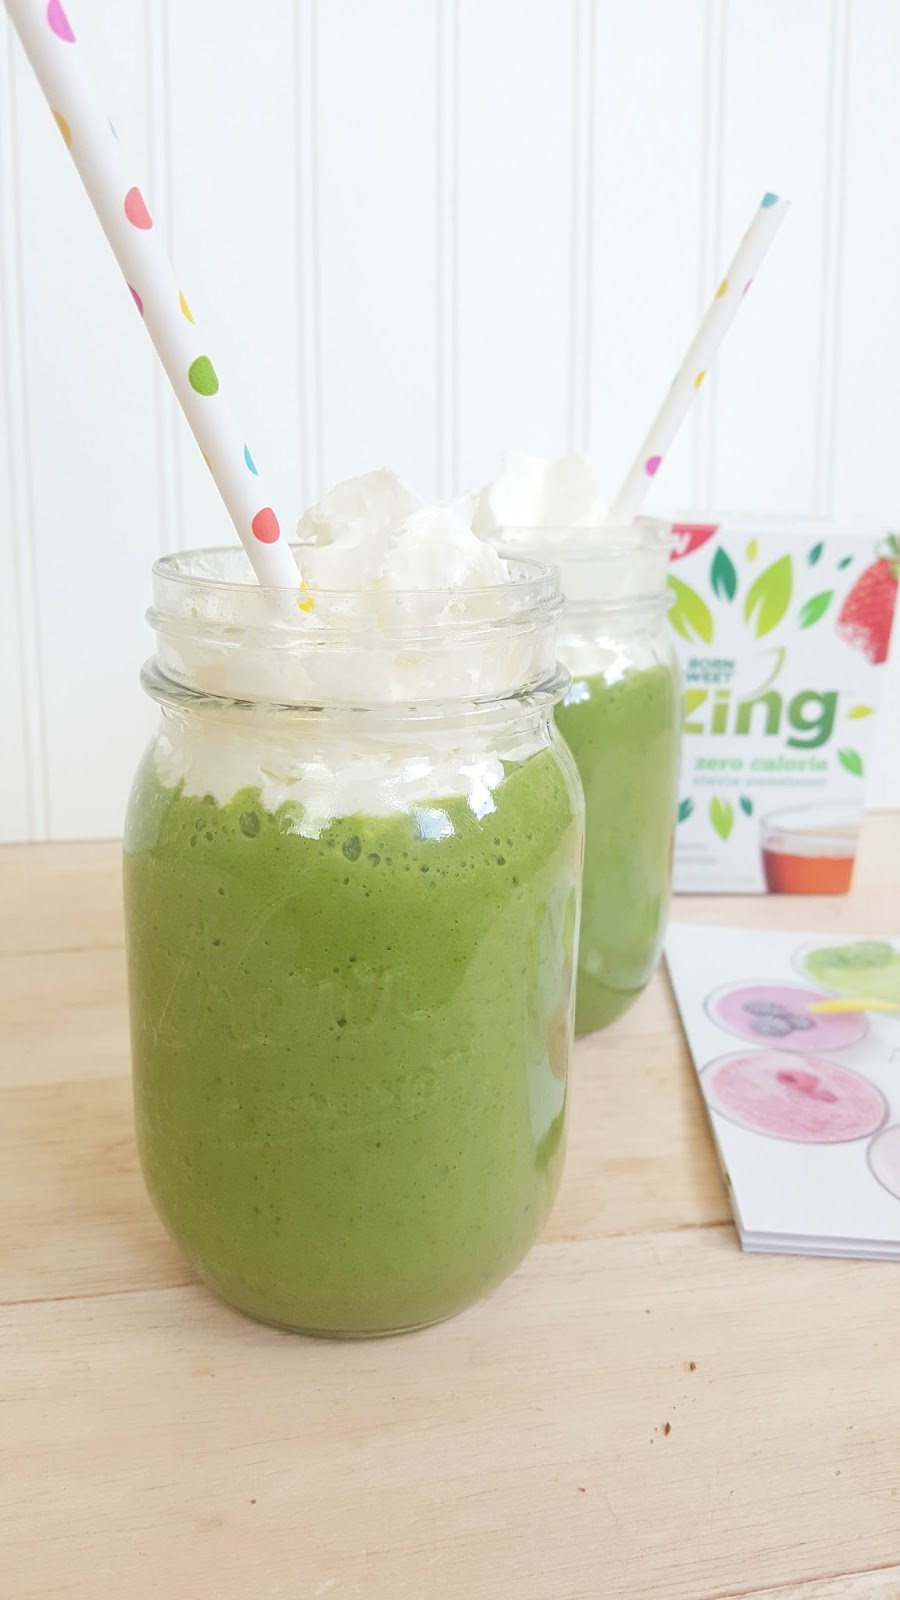 Ama-Zing Iced Blended Latte & Super Green with a Zing Smoothie